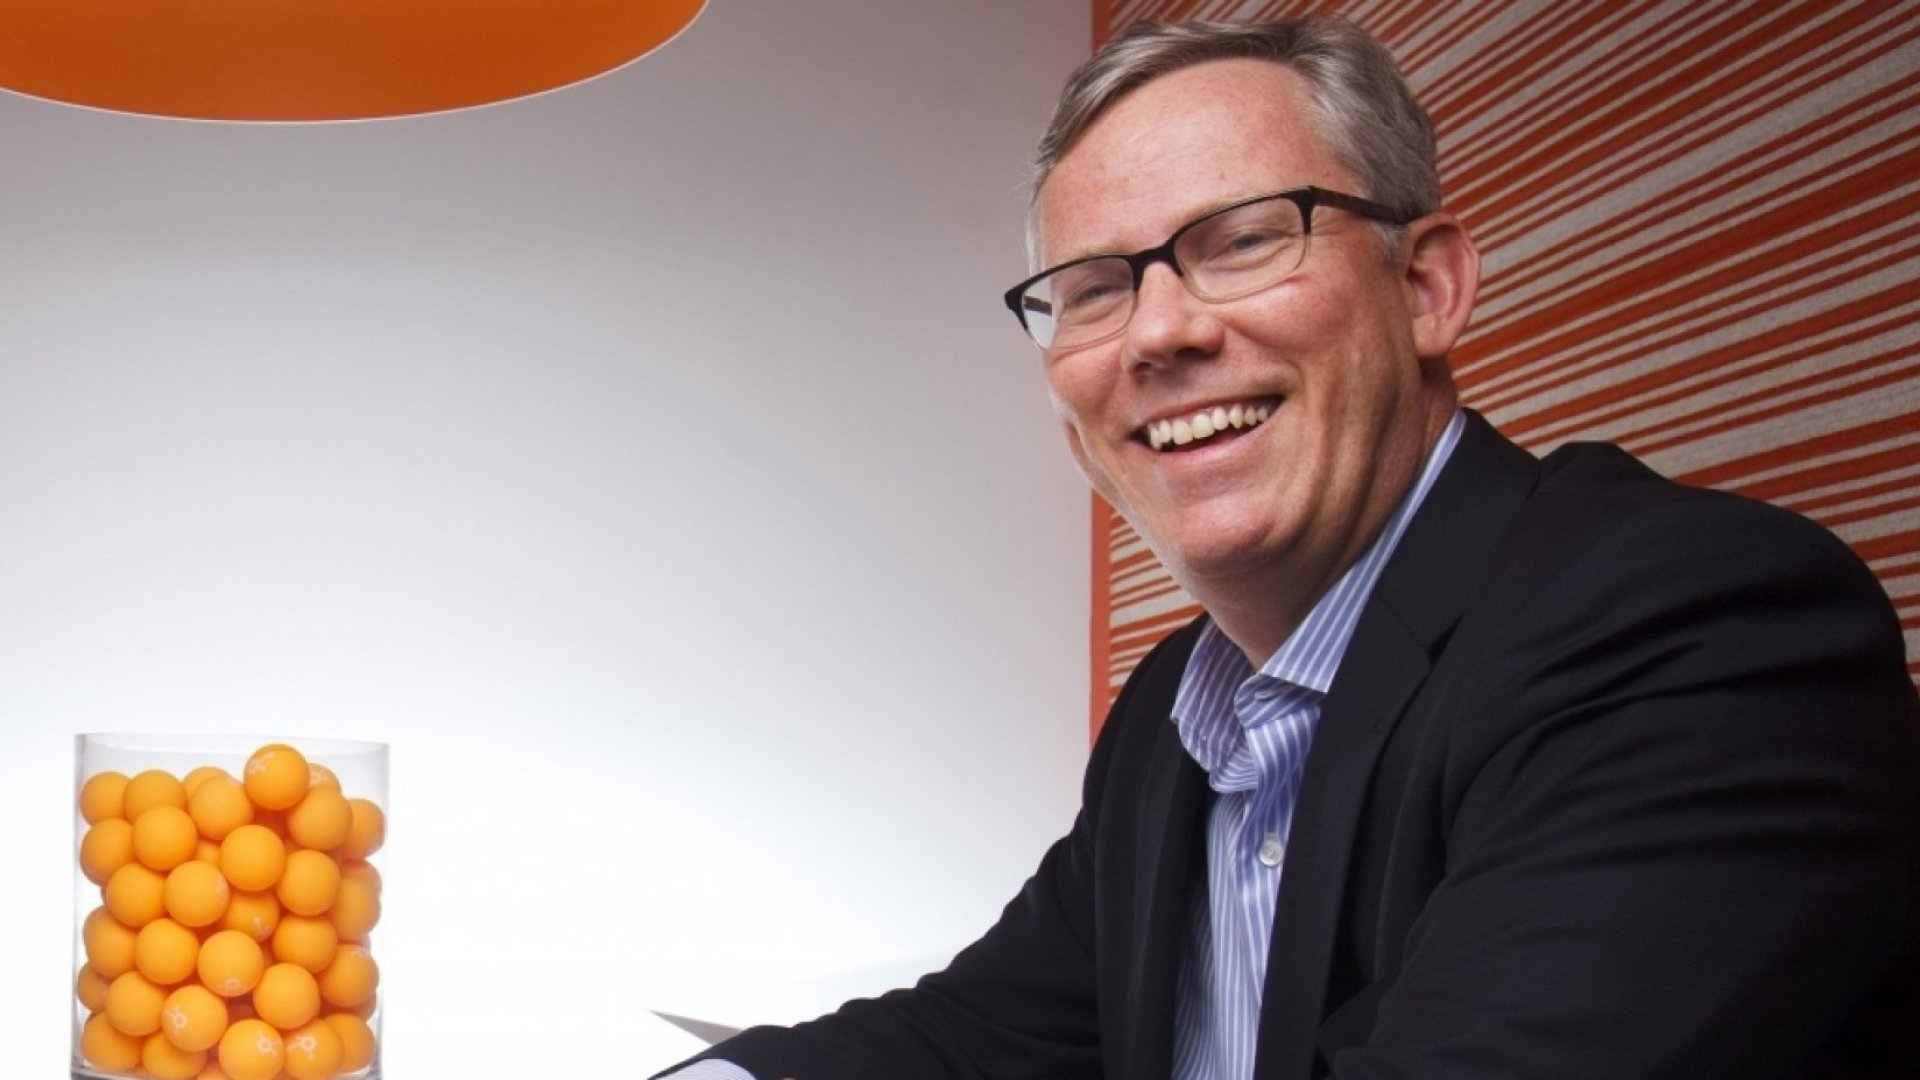 21 Incredible Facts About HubSpot CEO & Founder Brian Halligan